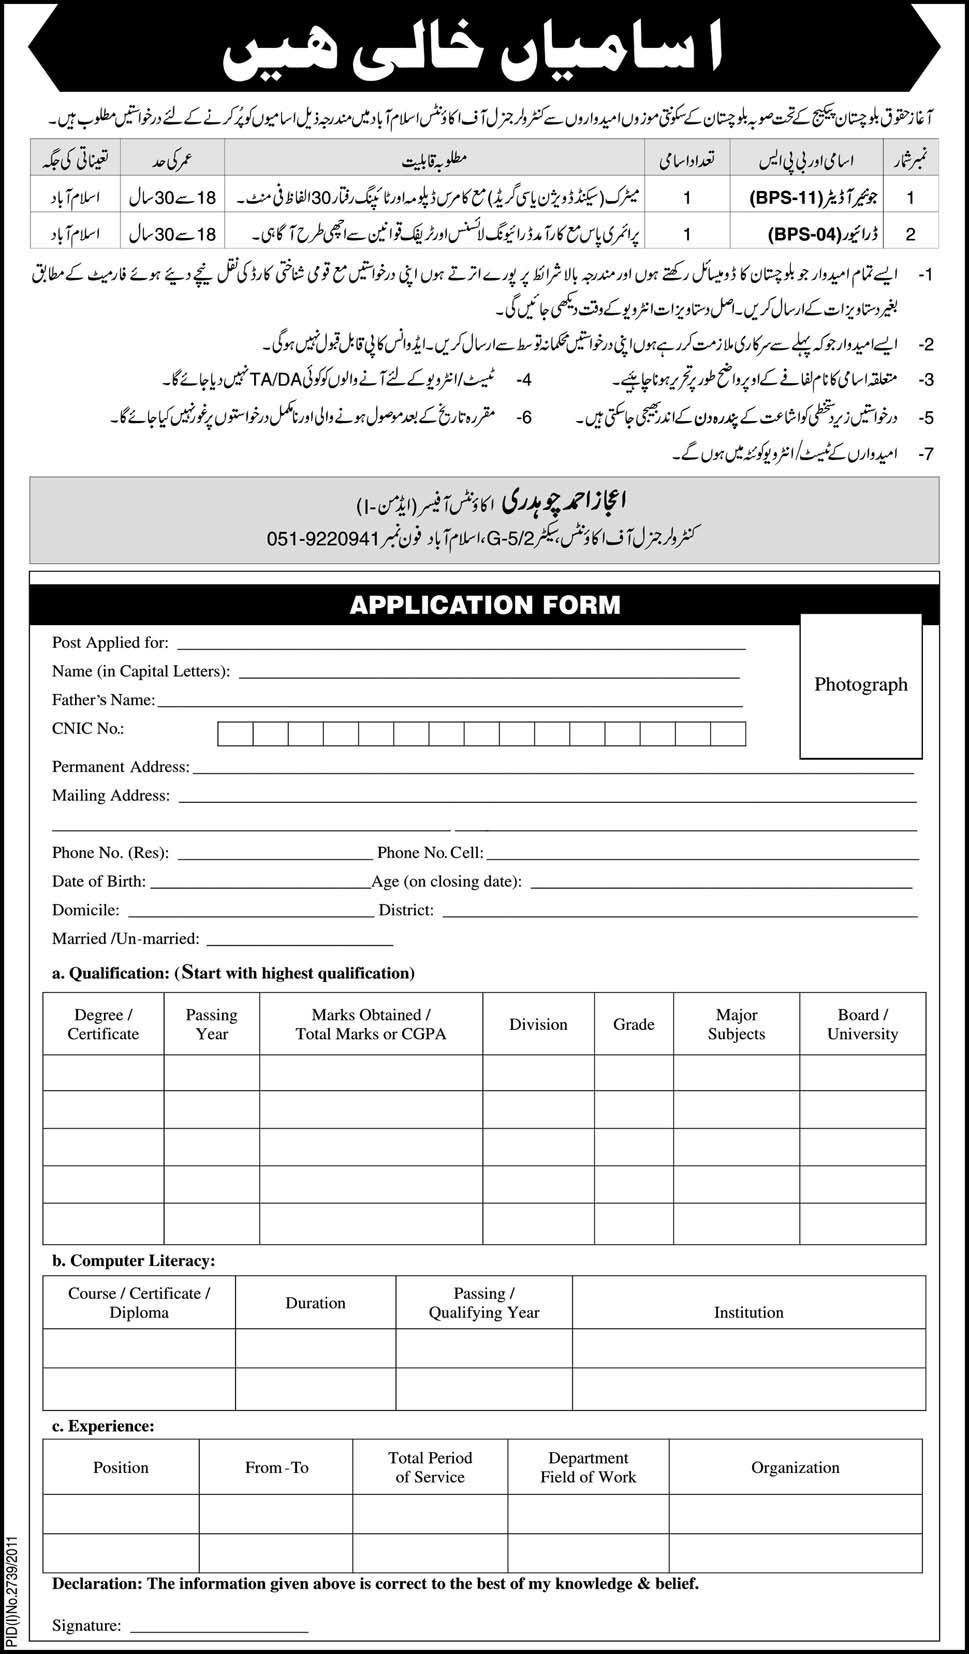 1101409683 1 Jobs in Islamabad under Aghaz Huqooq e Balochistan Package